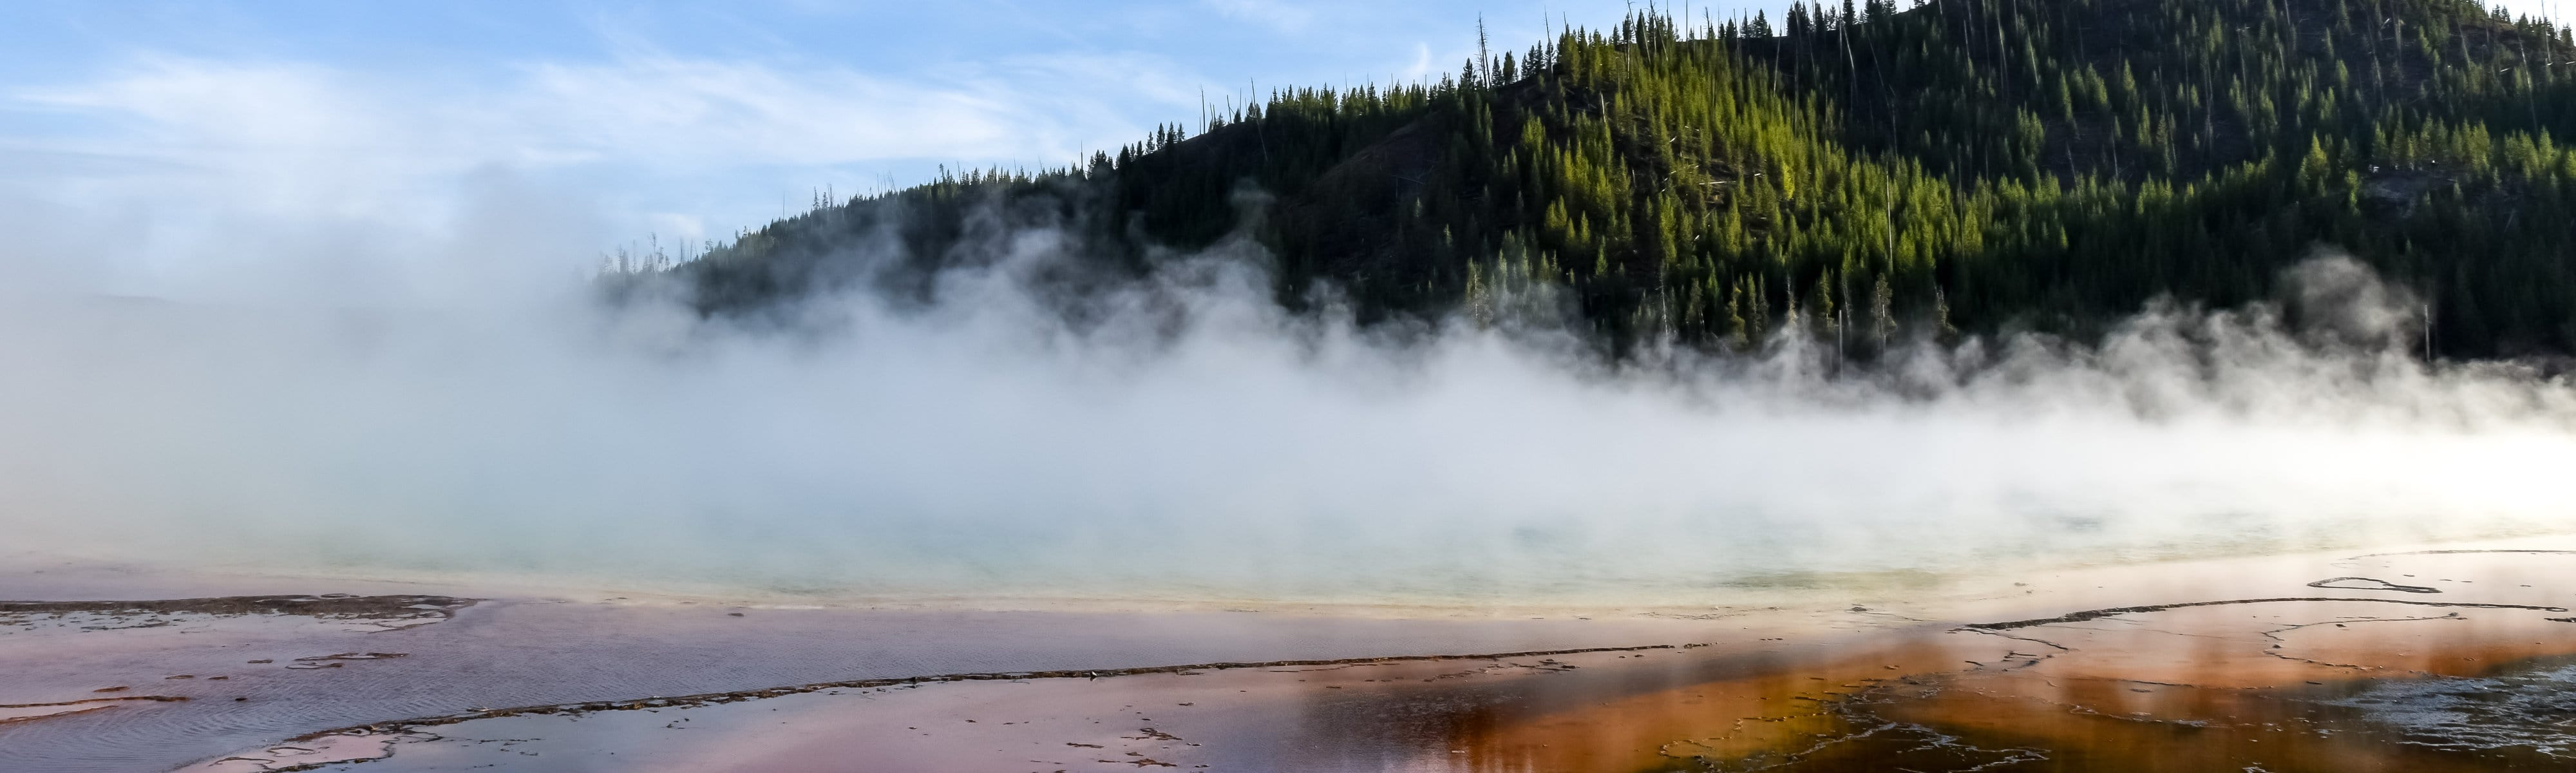 Steam coming from a hot spring.